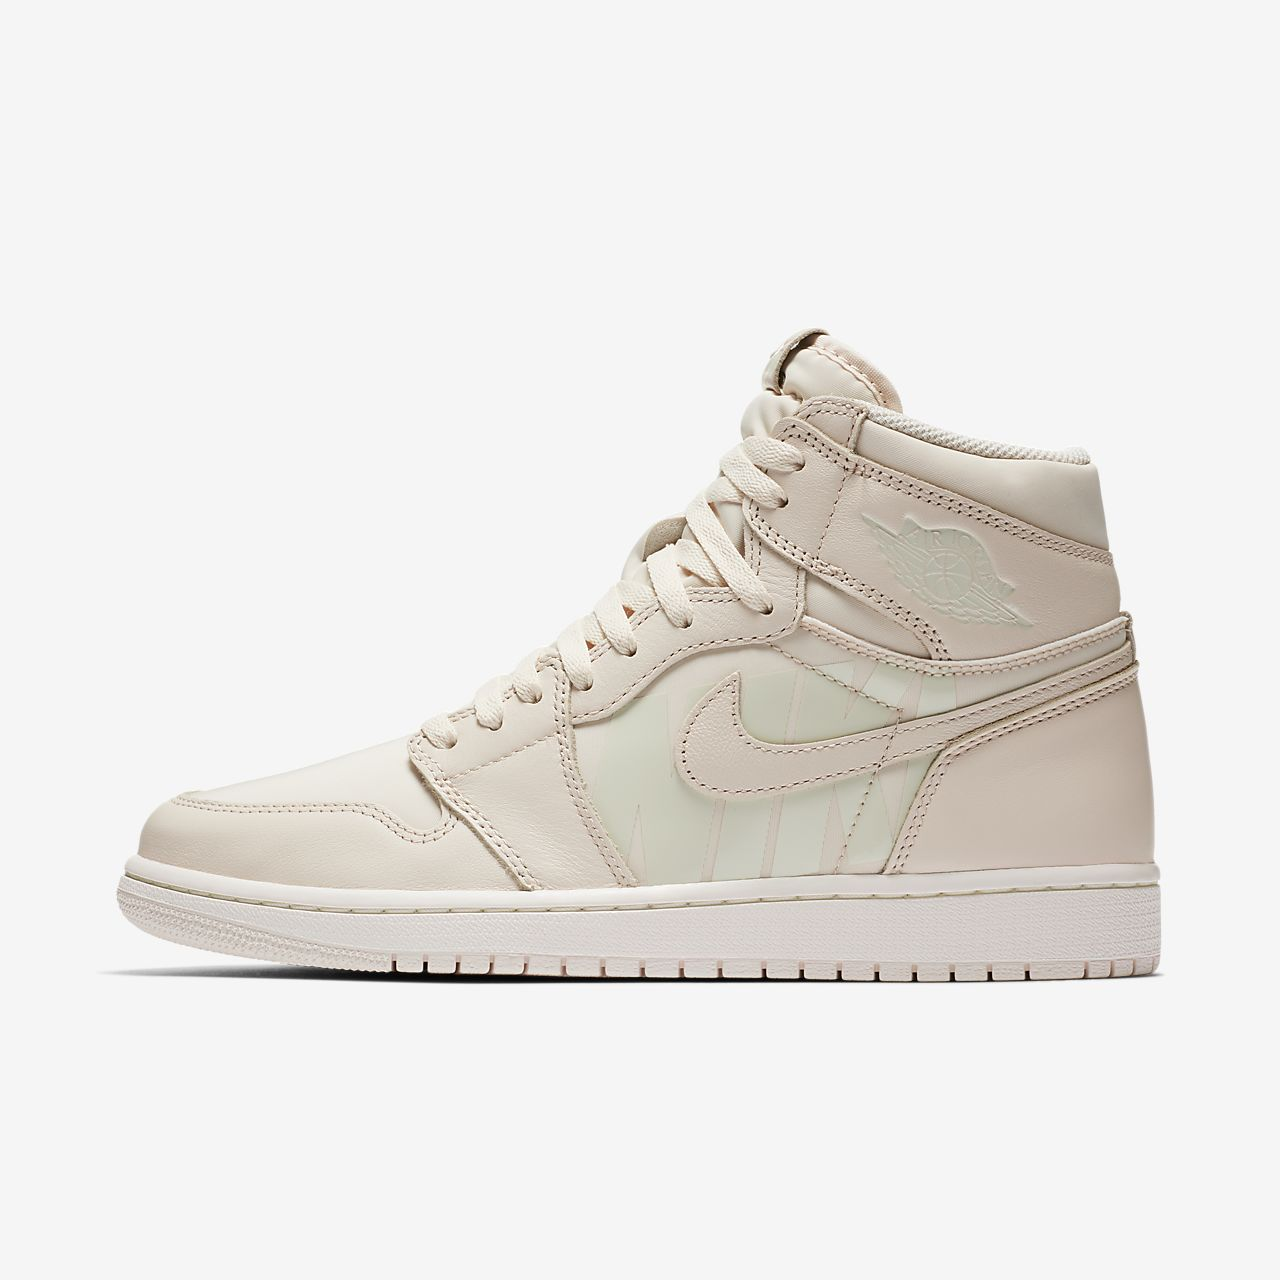 new styles 4b2d9 b78eb ... Air Jordan 1 Retro High OG Shoe